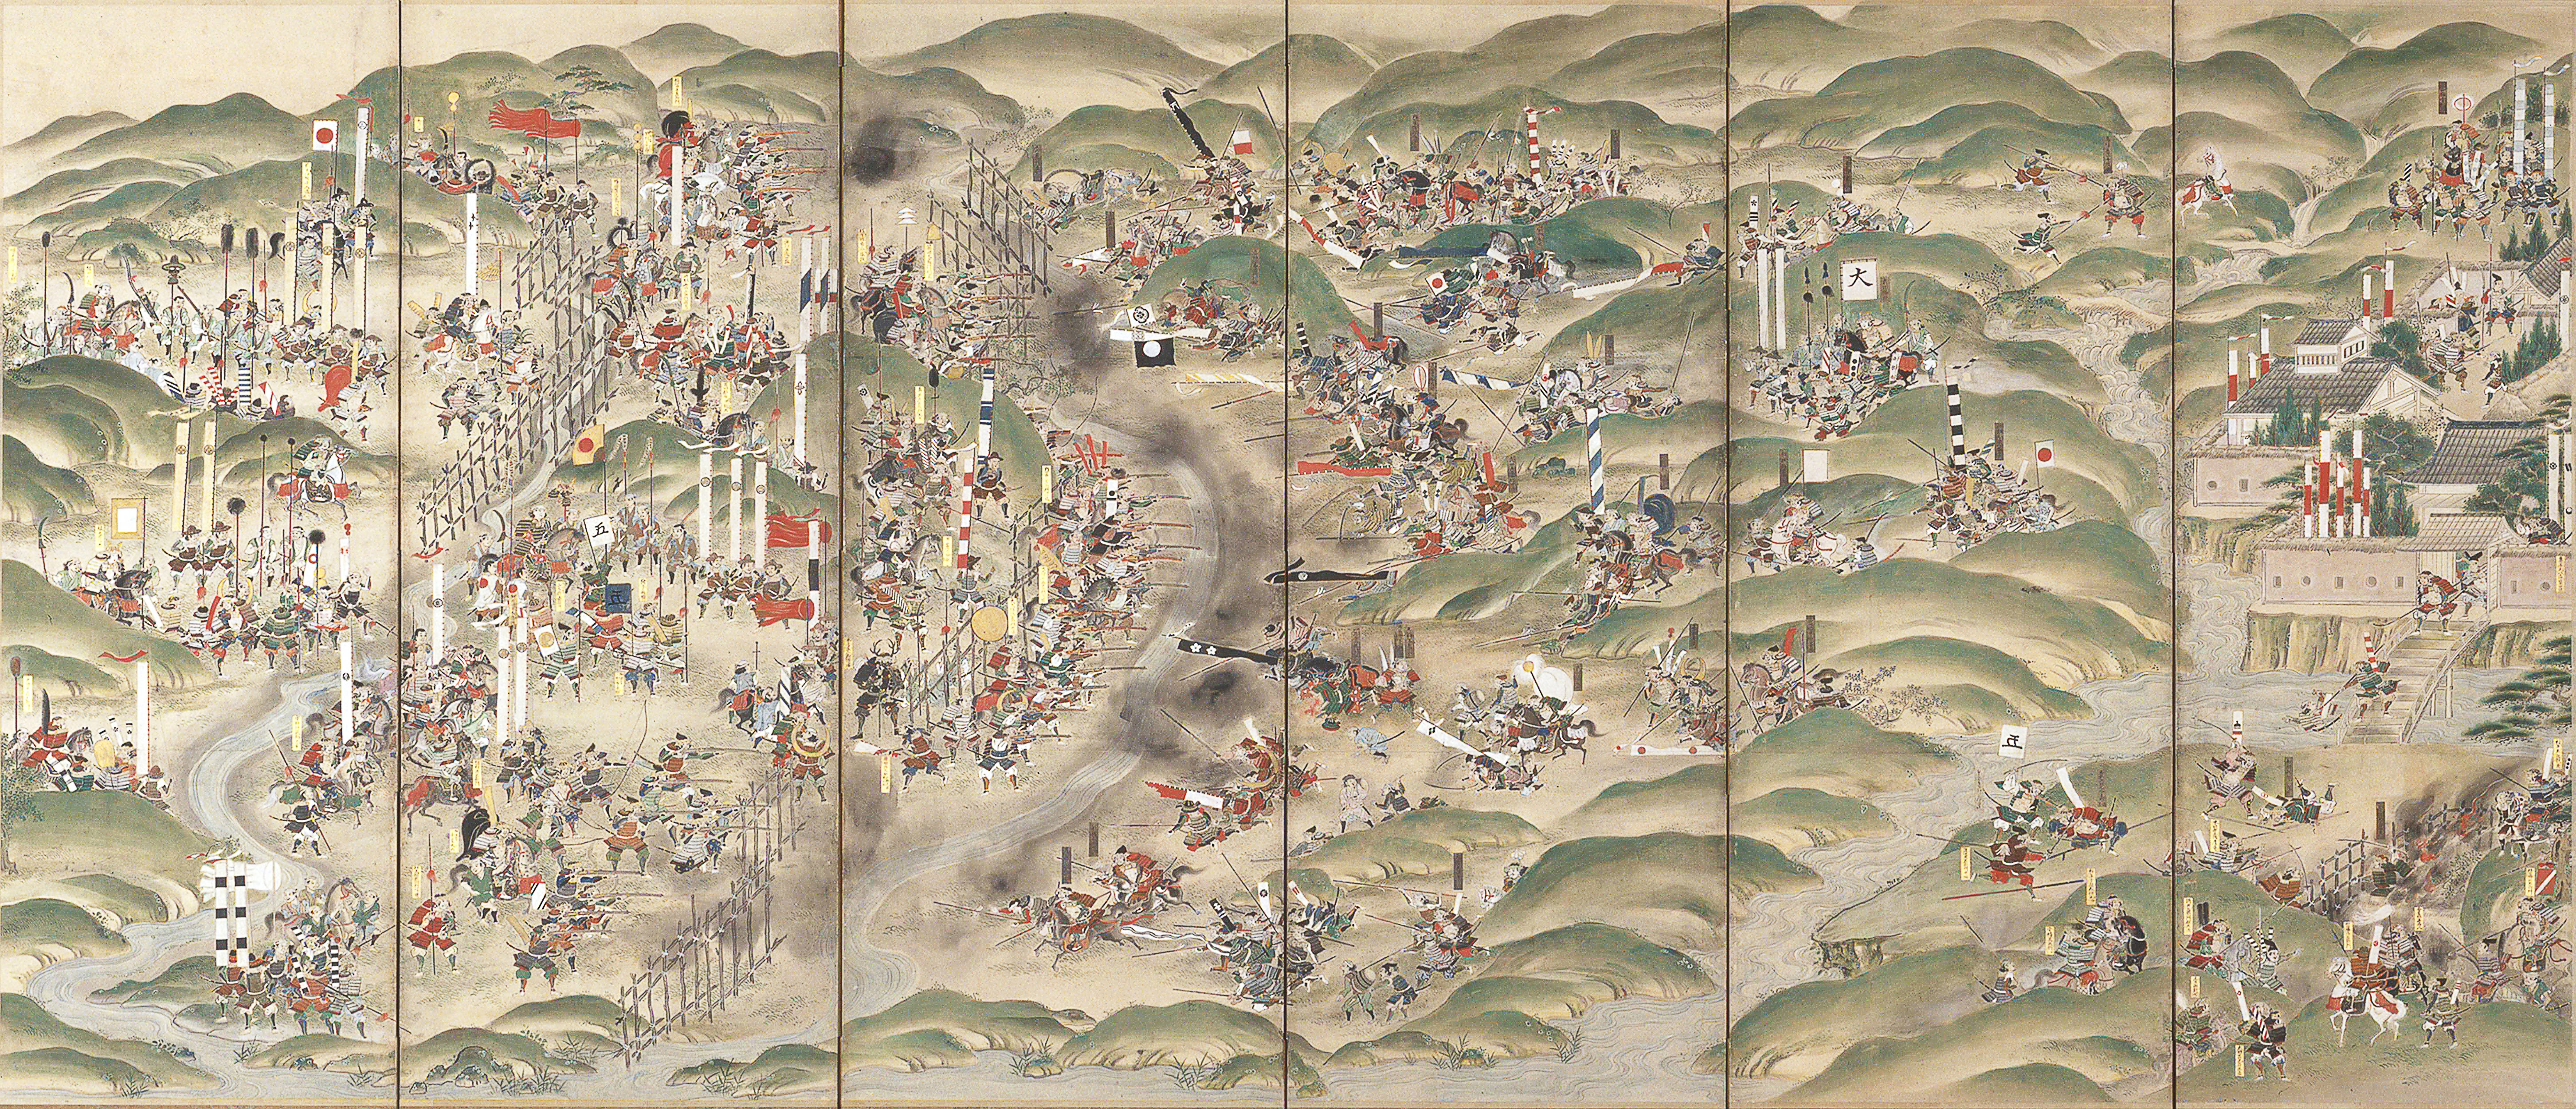 http://upload.wikimedia.org/wikipedia/commons/5/5d/Battle_of_Nagashino.jpg